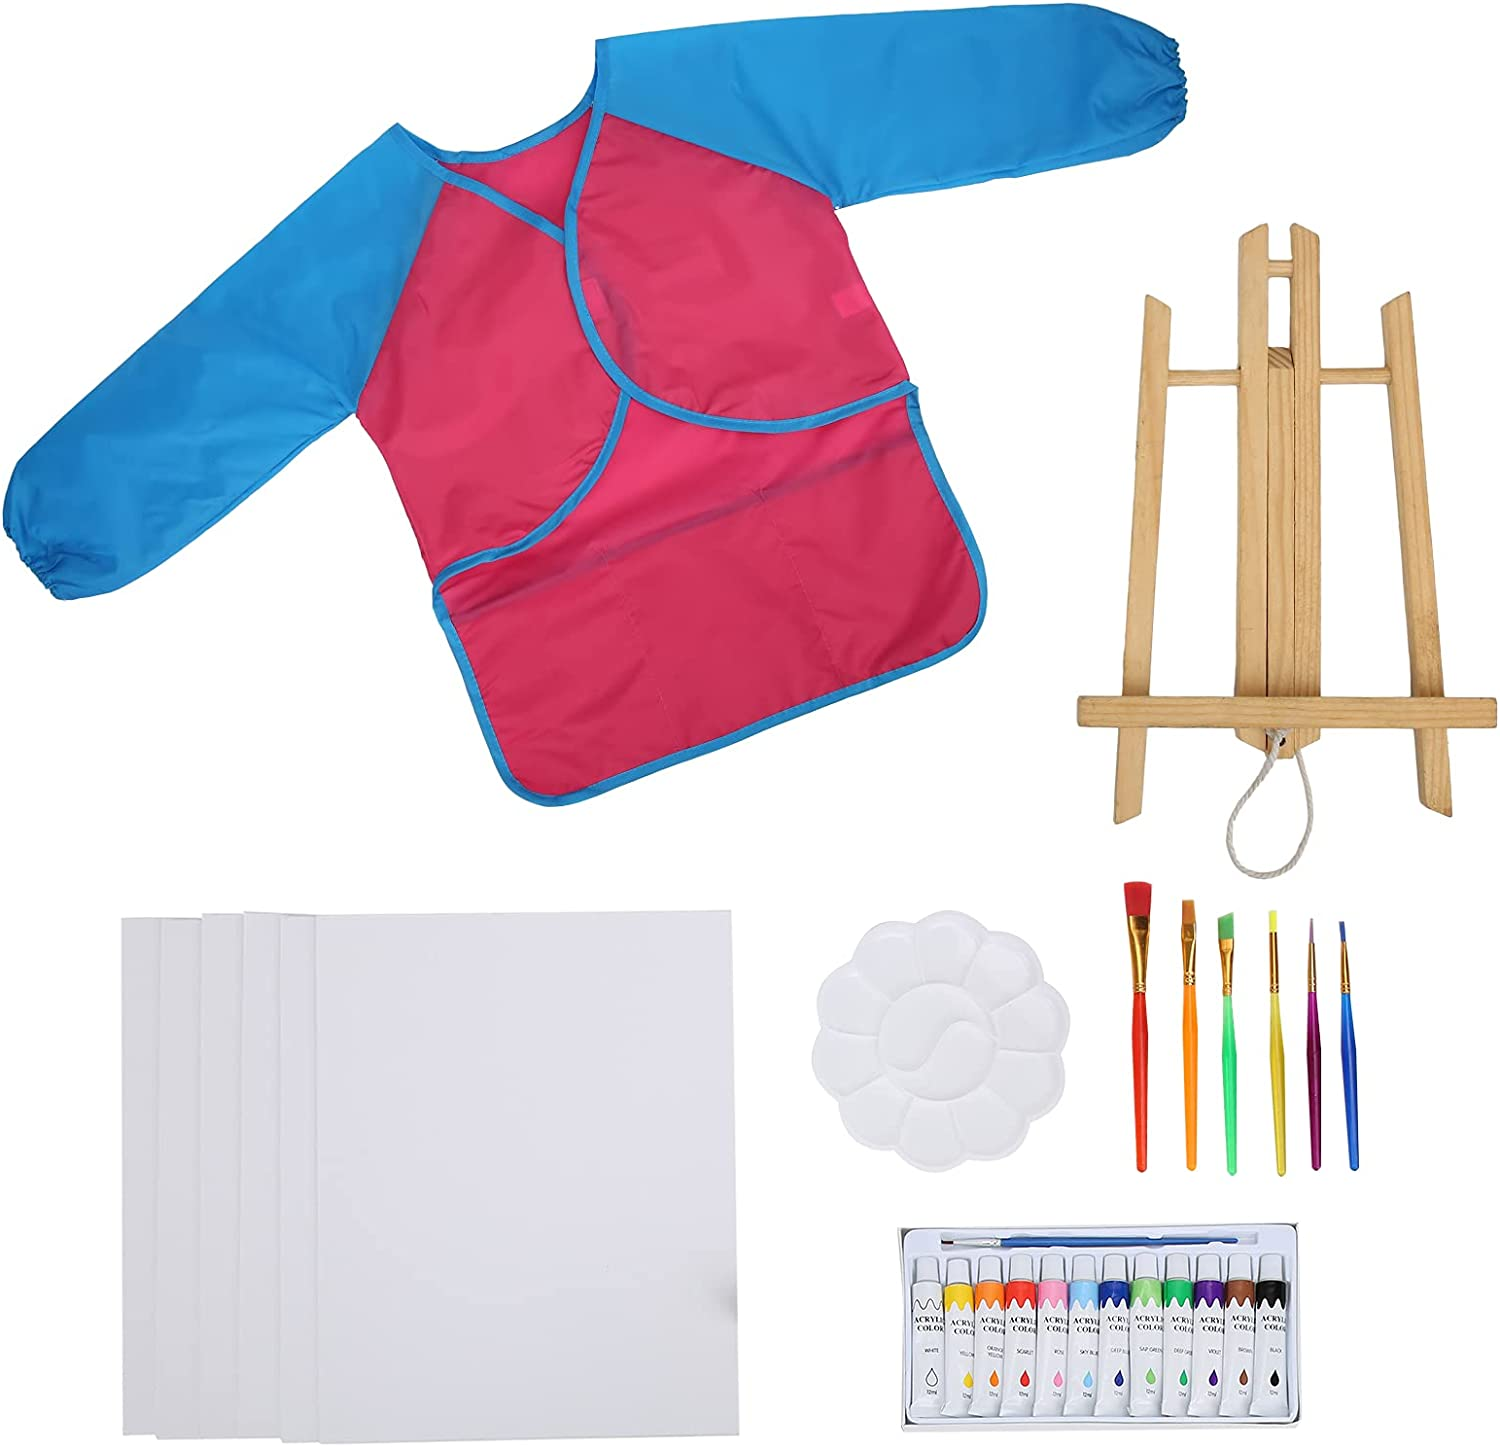 San Francisco Mall DIY Acrylic Paint Set Brushes Smock and Super sale Safe Healthy